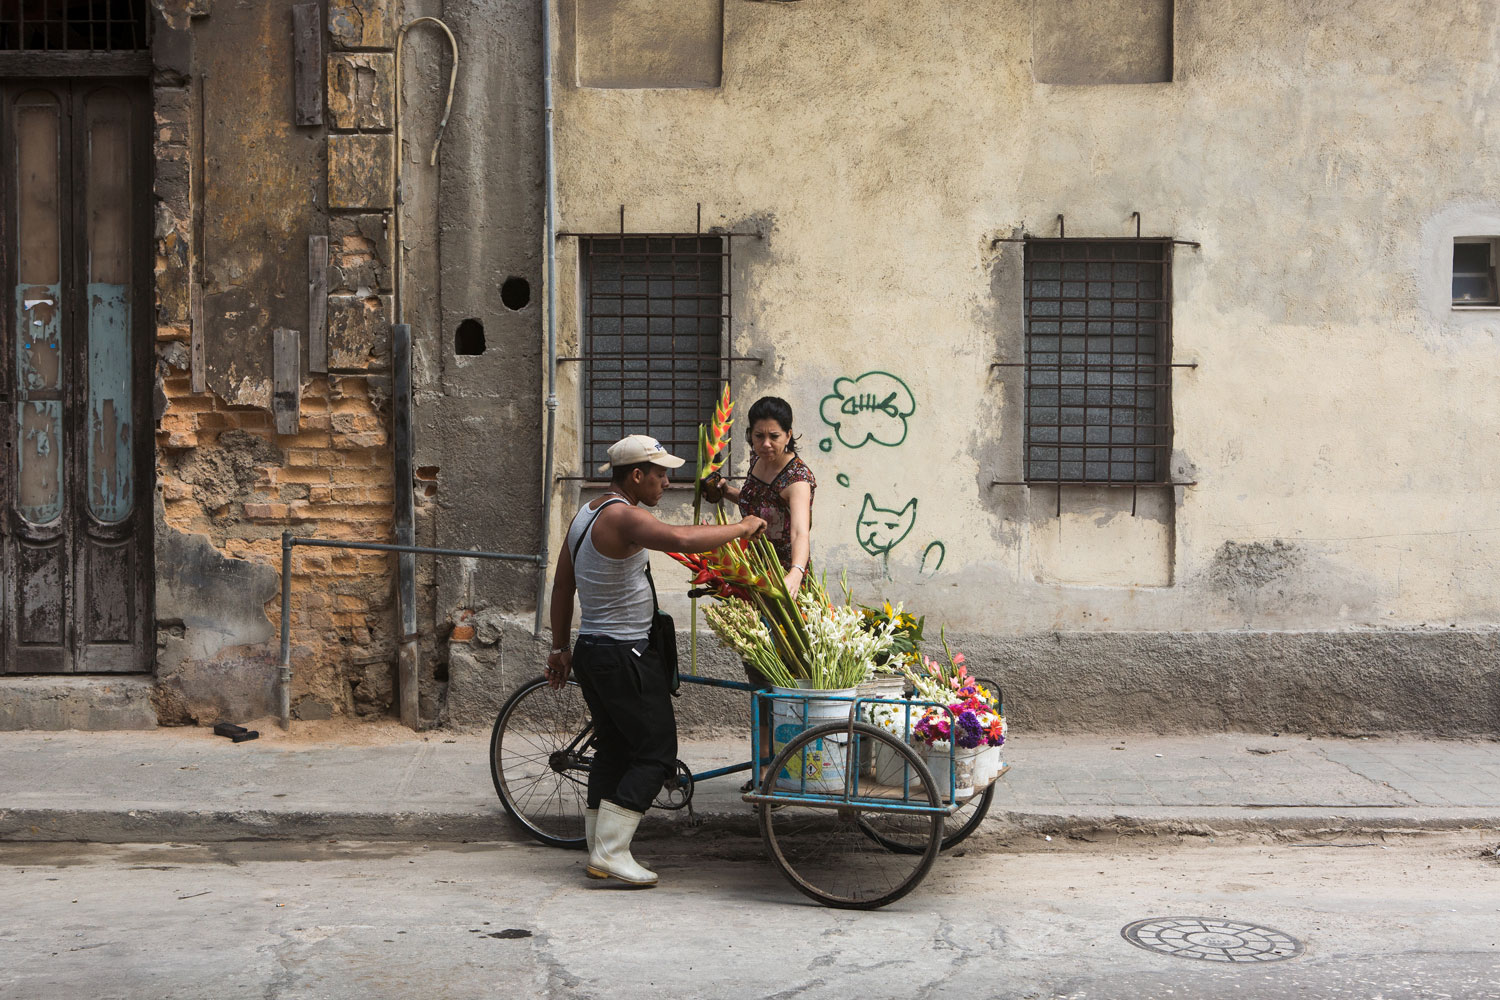 A flower vendor selling flowers to a woman in Centro Havana, Cuba